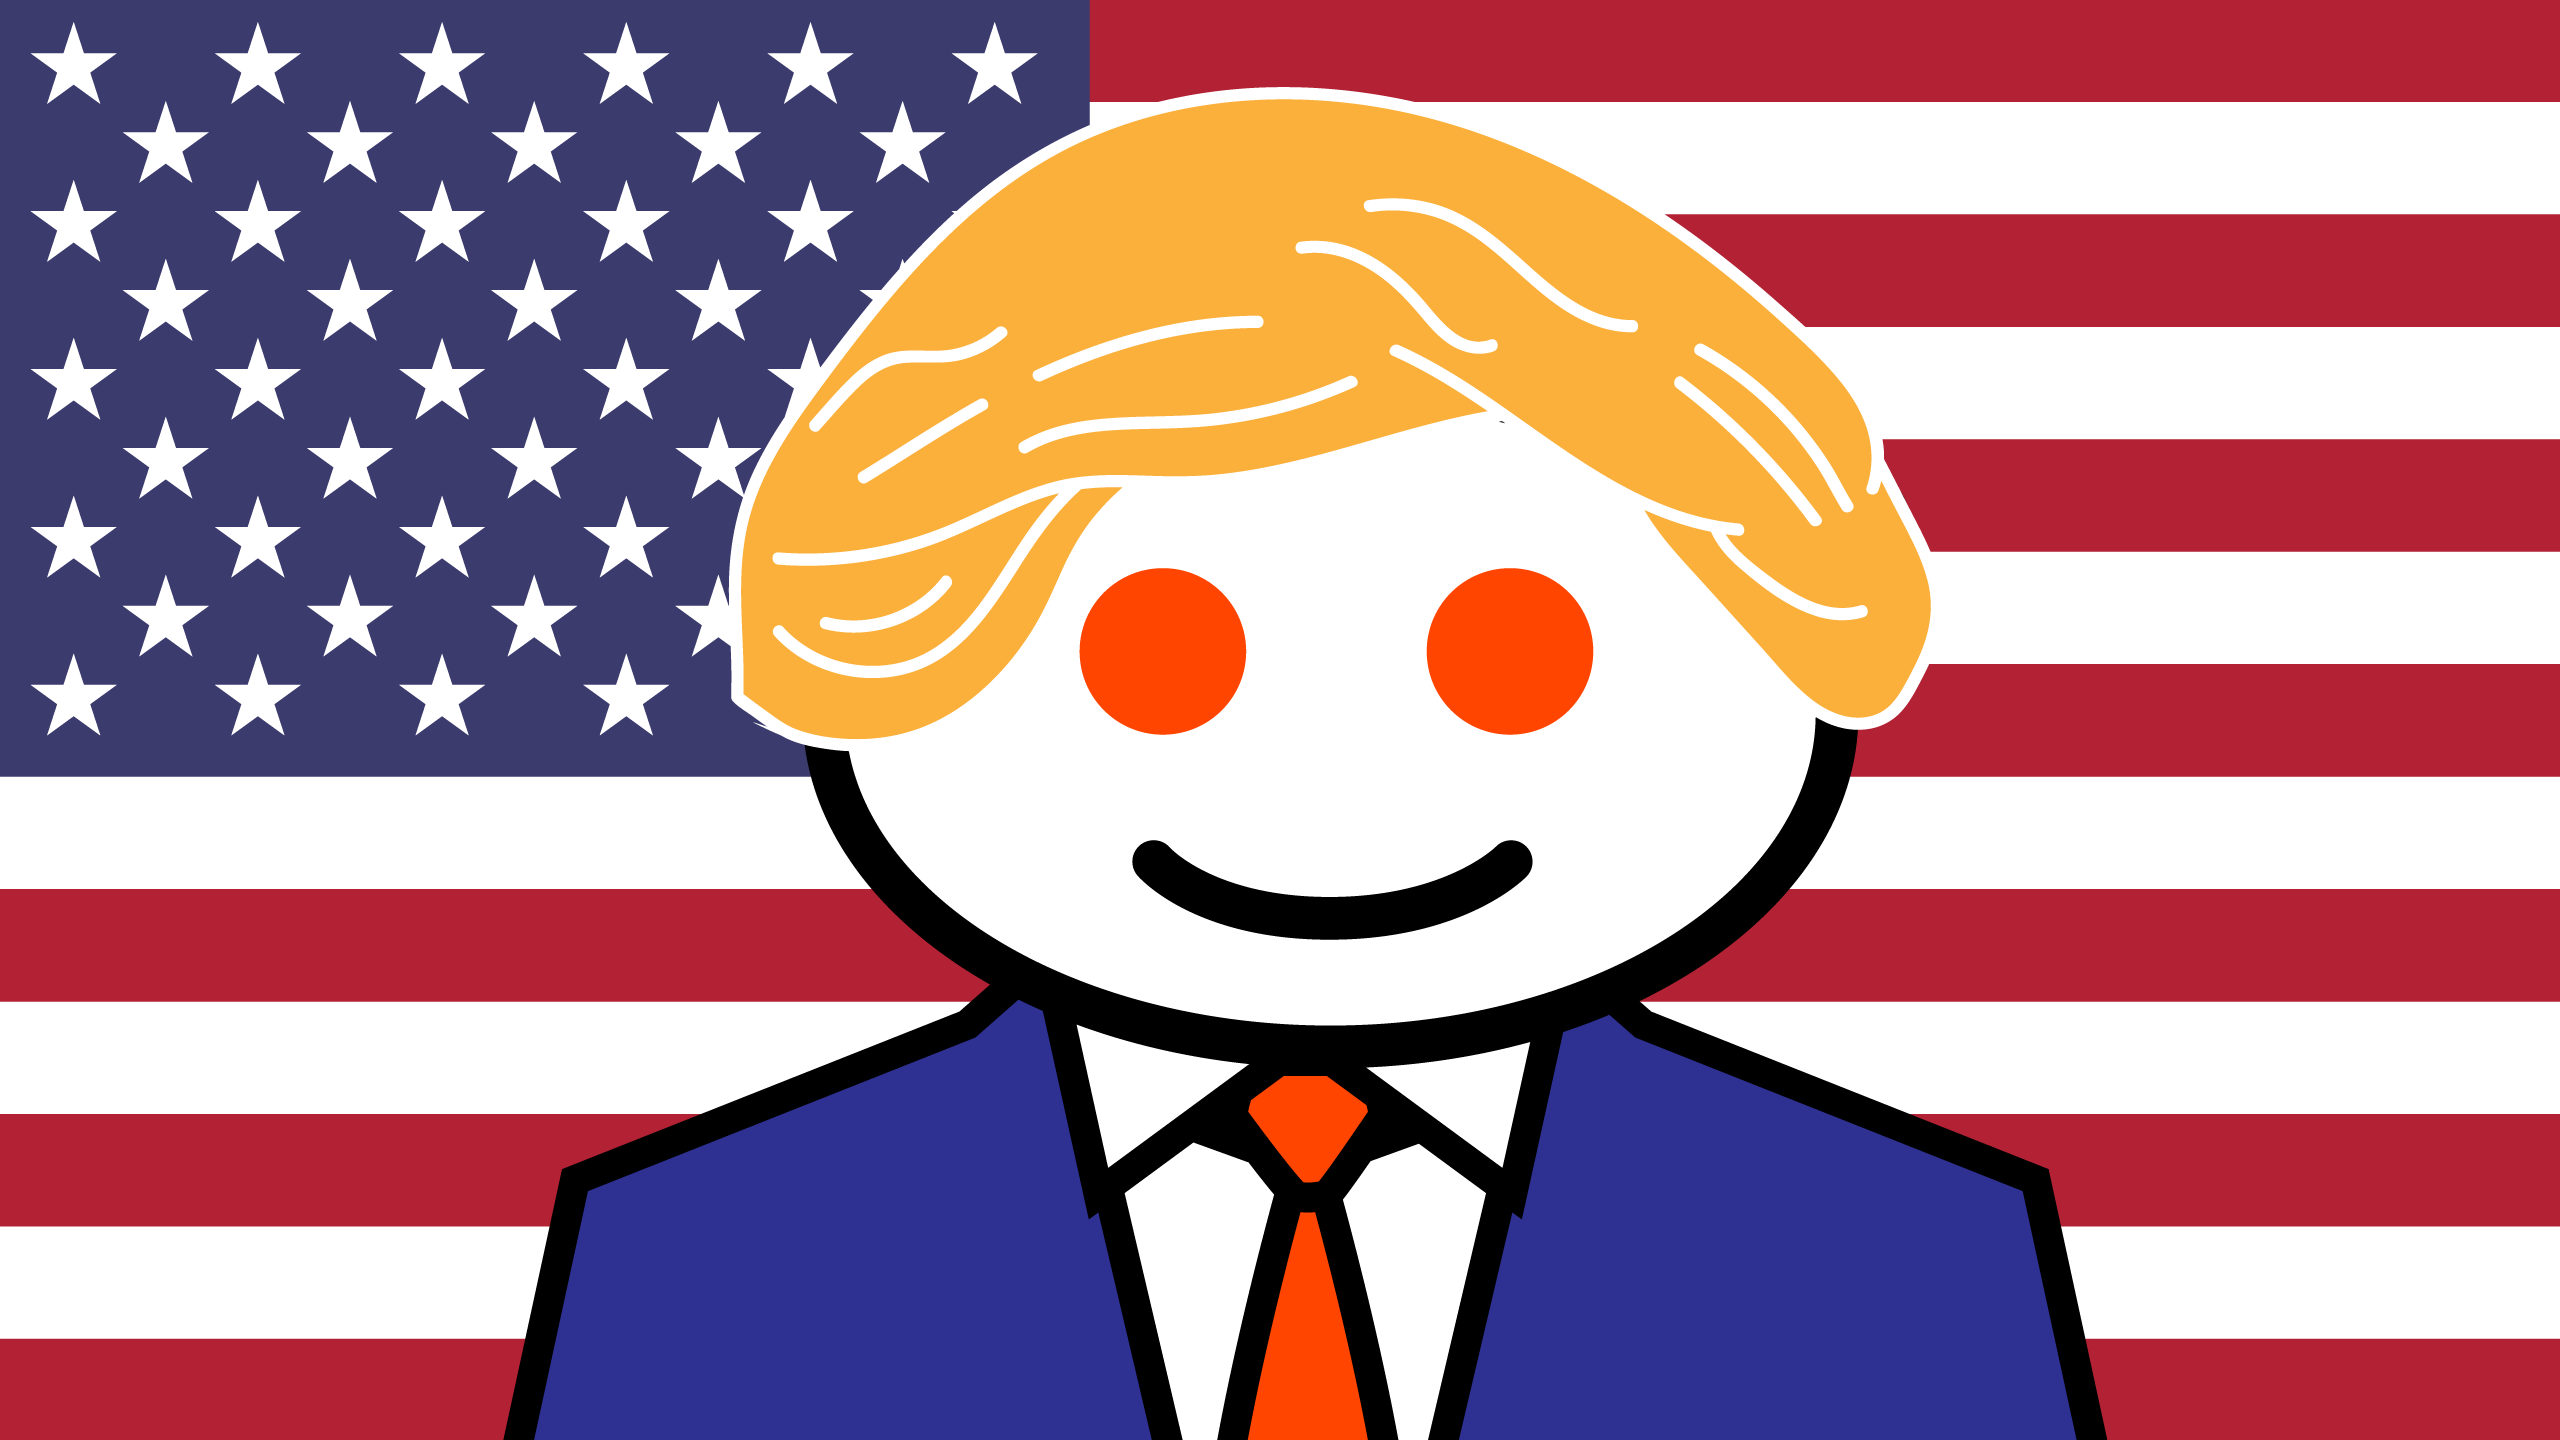 Reddit CEO Im confident that Reddit could sway elections